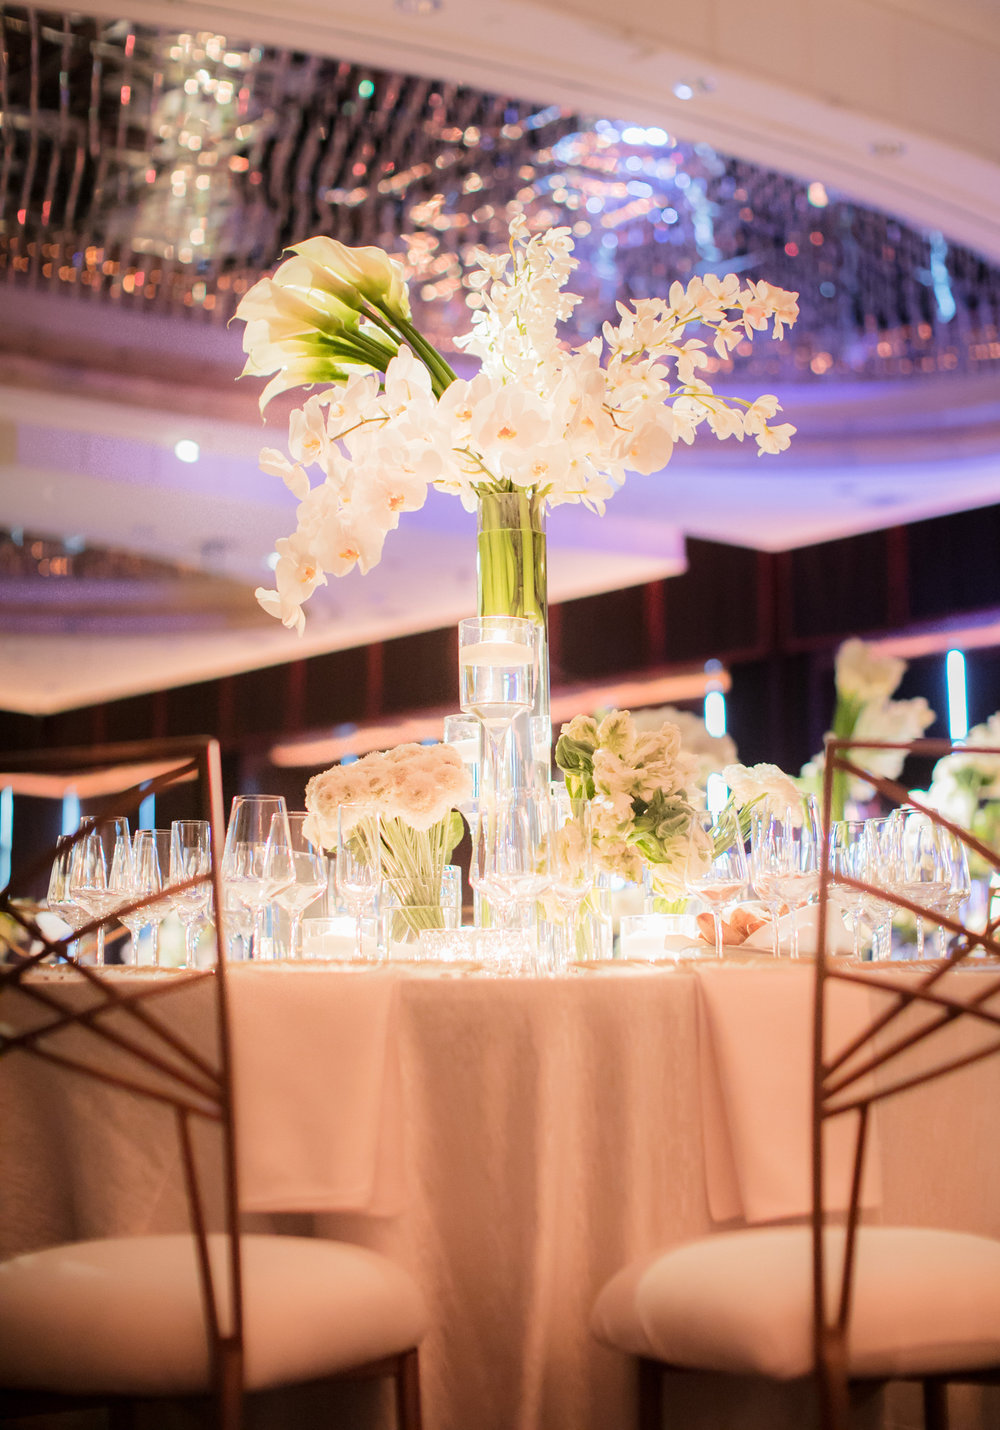 Andrea-Freeman-Events-NY-Wedding-Planner-Mandarin-Oriental-Wedding-14.jpg